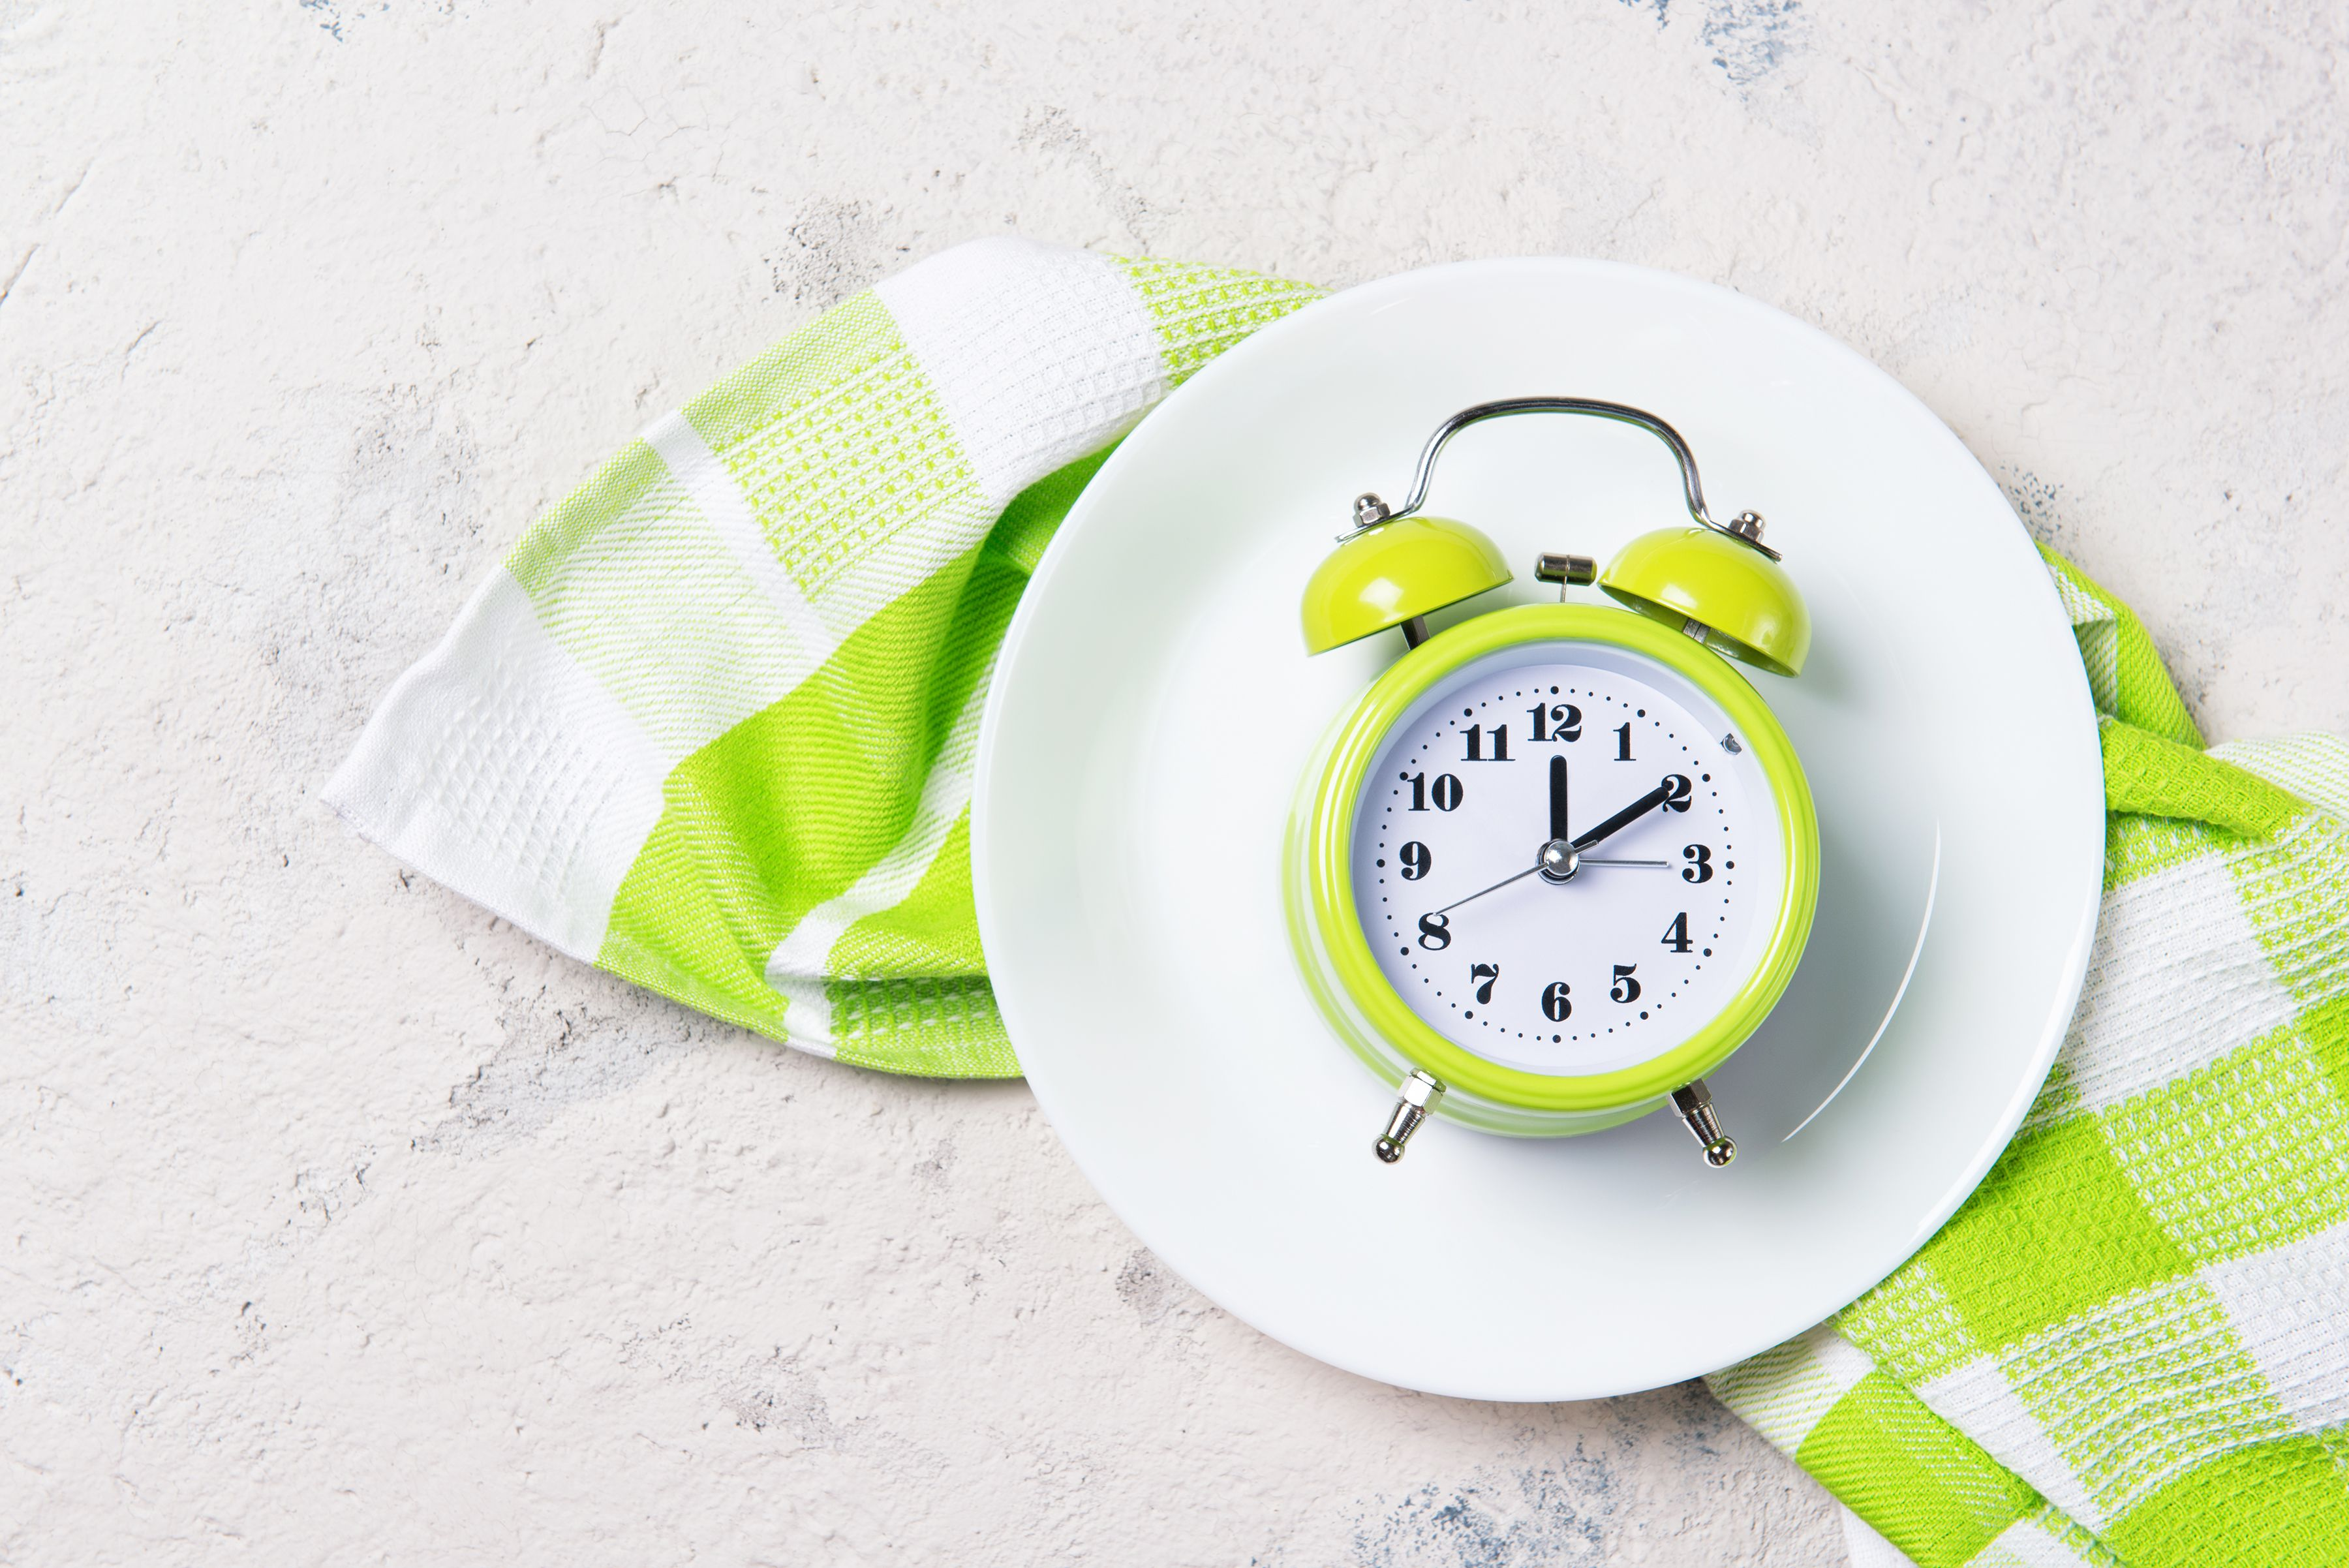 Intermittent Fasting Benefits Results That Happened For Me